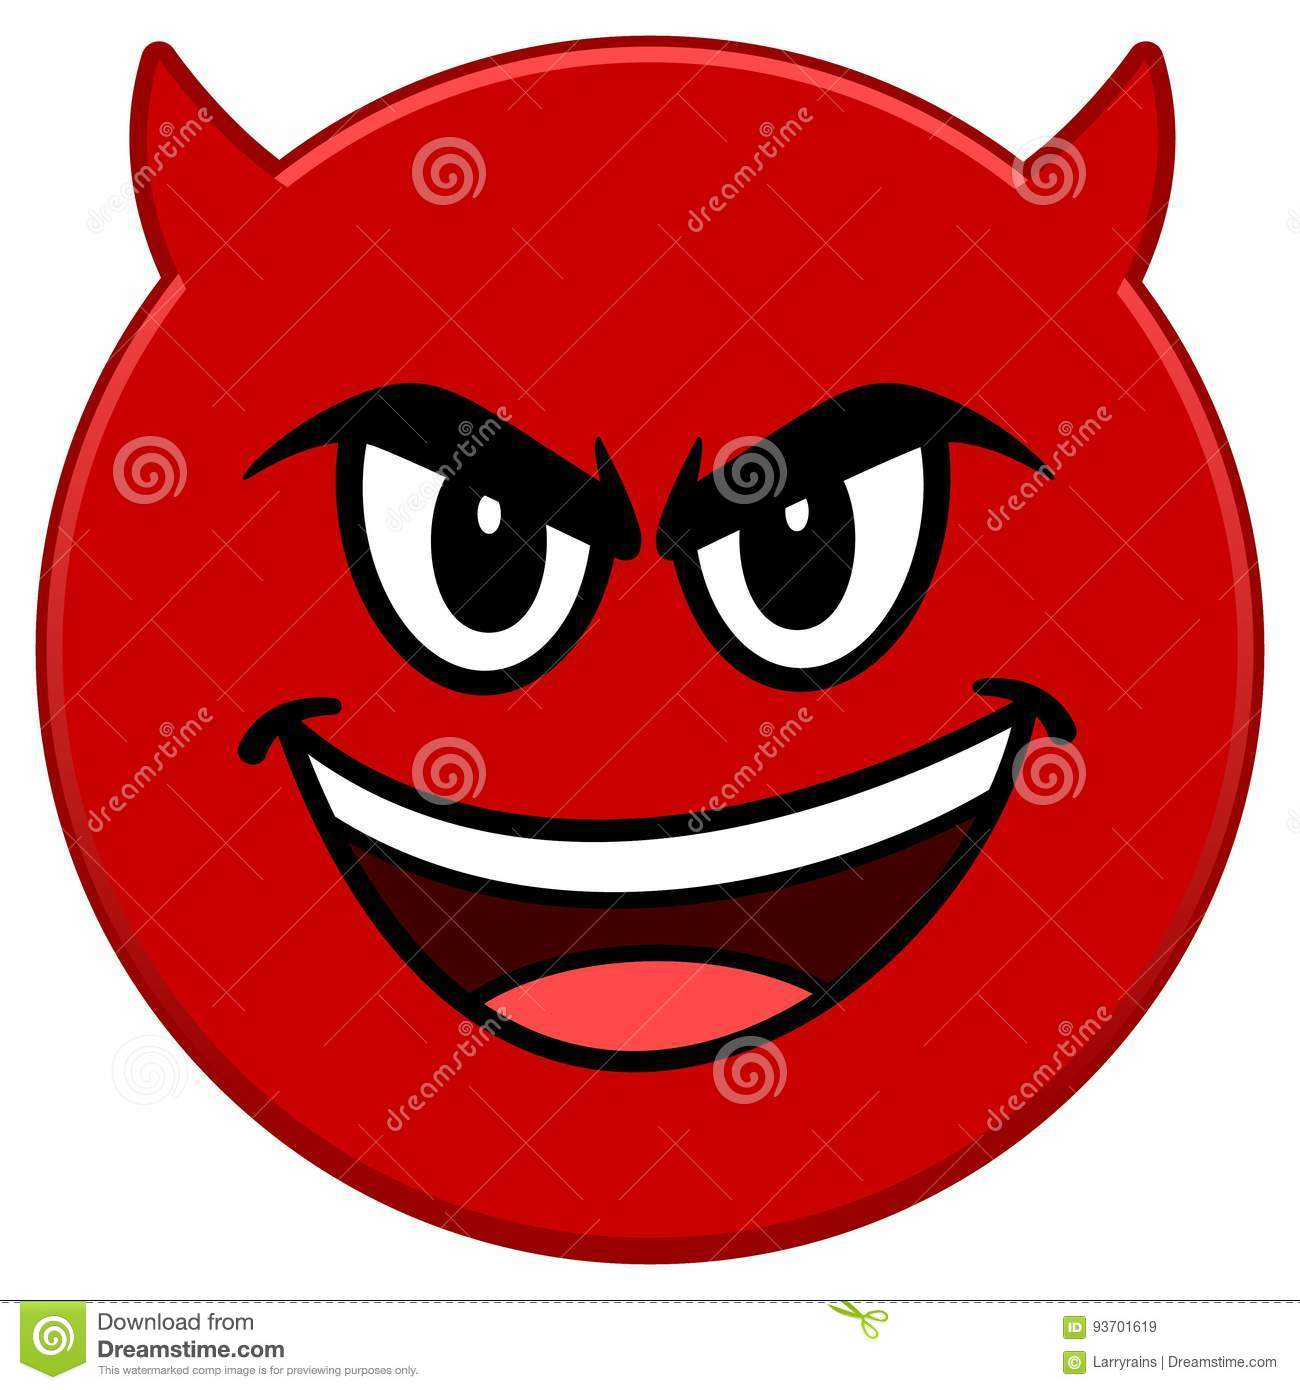 cb6bd81519e8 Evil Emoticon Stock Illustrations – 2